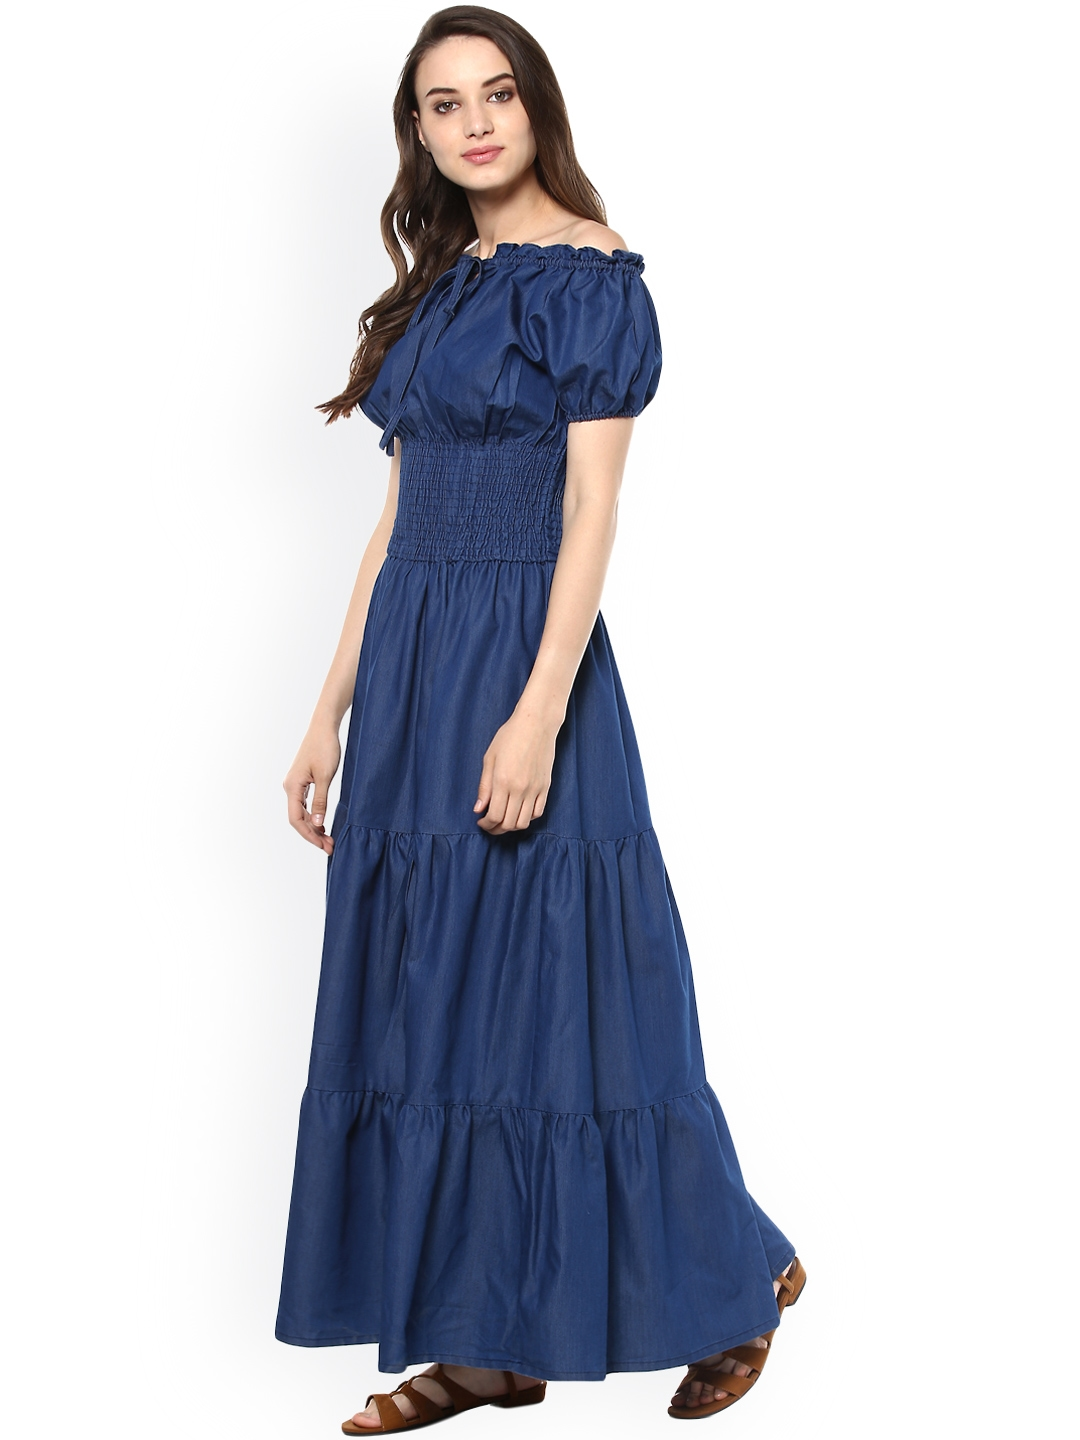 3255e4ed63c Buy stylestone women blue denim maxi dress dresses for women jpg 1080x1440 Maxi  dress denim blue